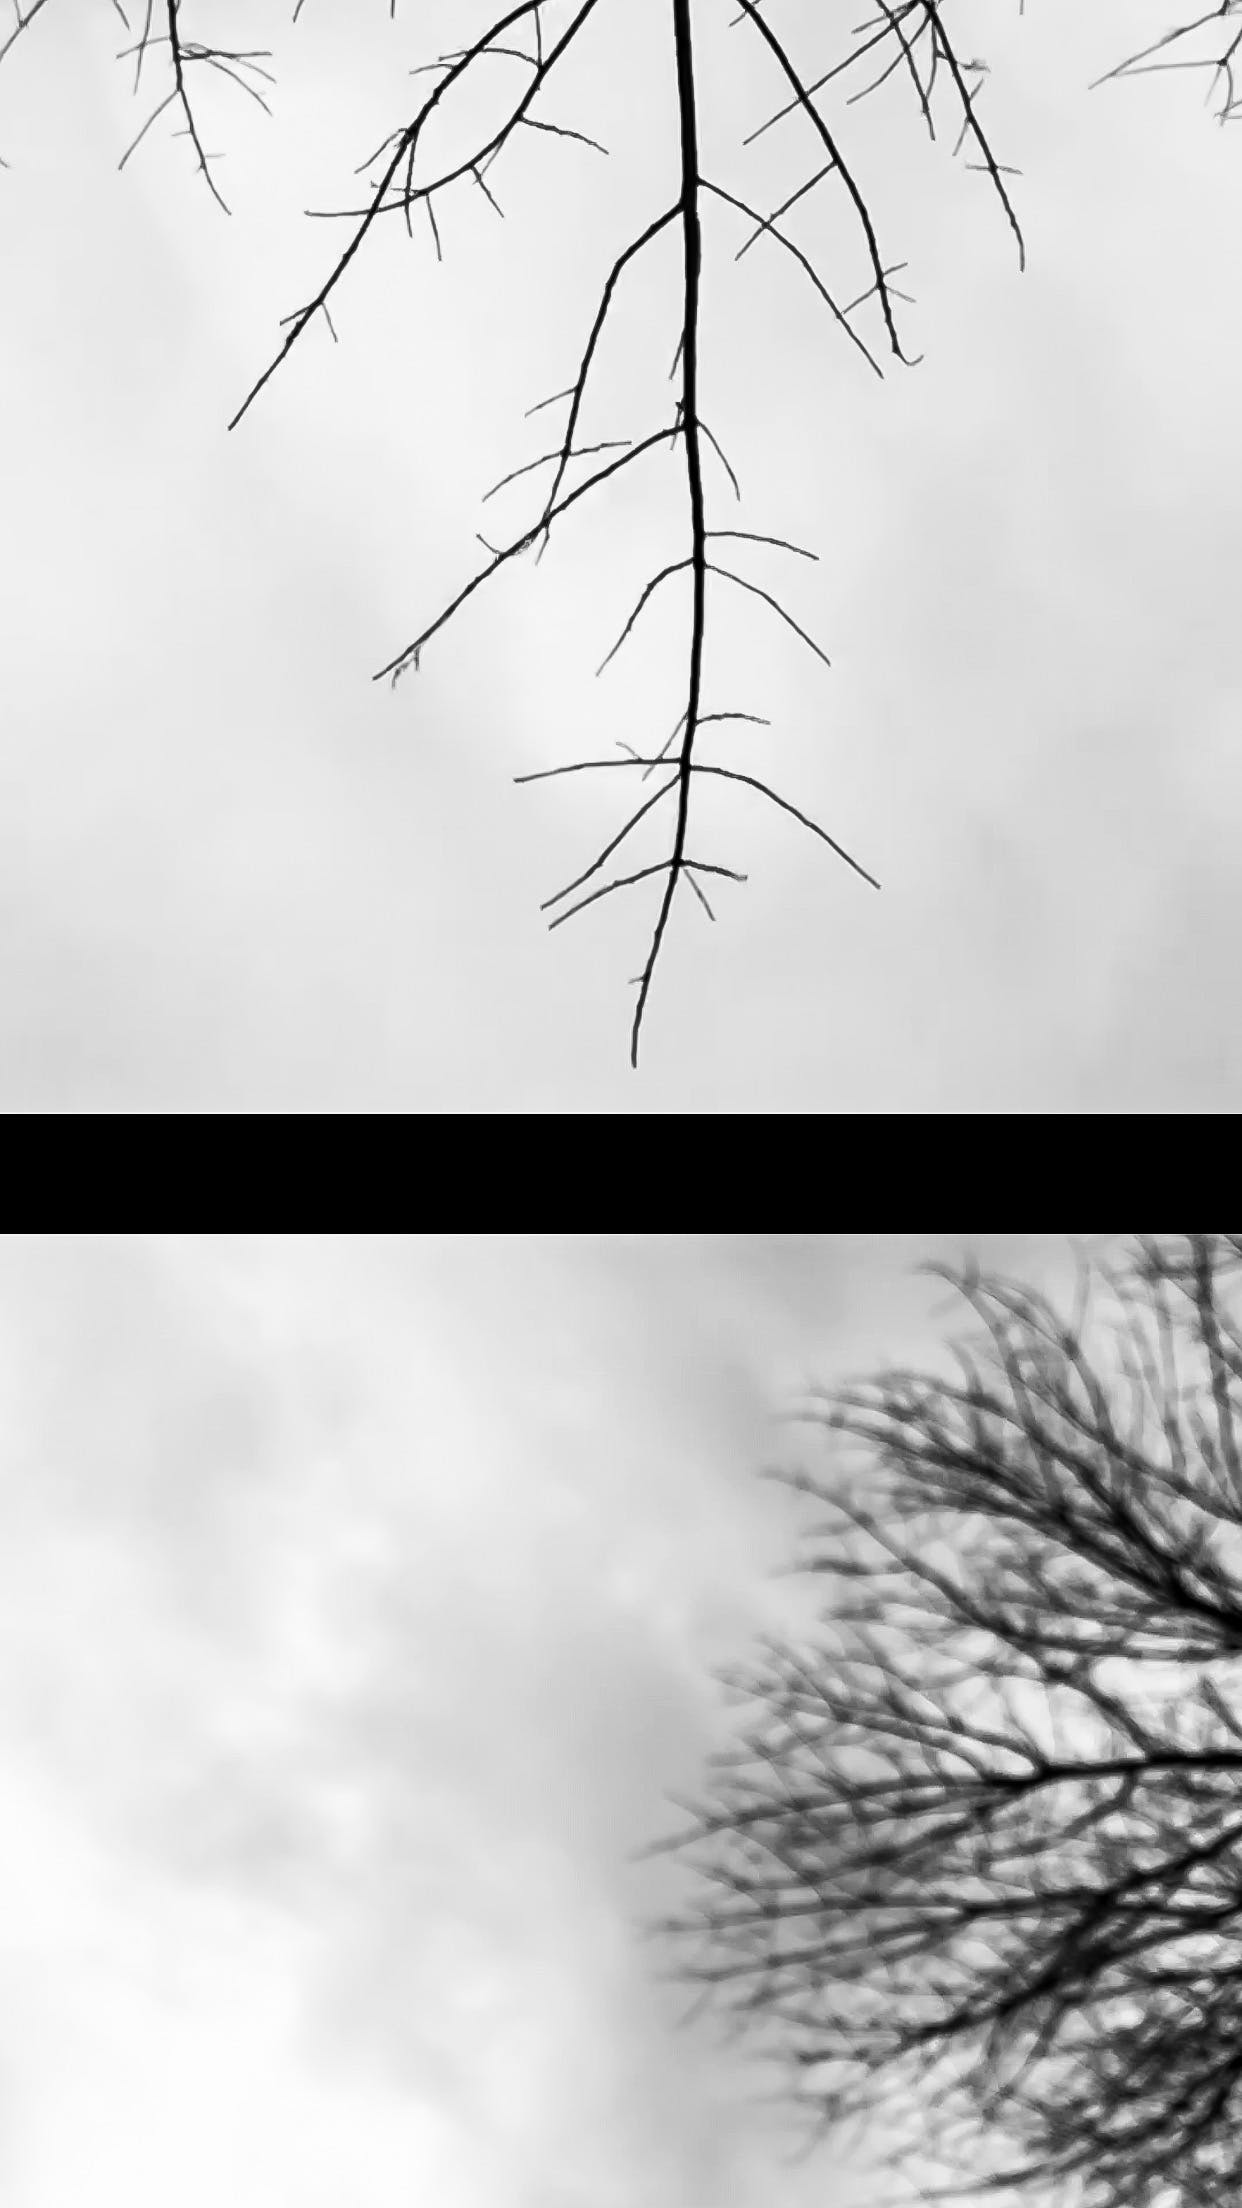 Free stock photo of art, black and white, Close and Far, cloudy skies